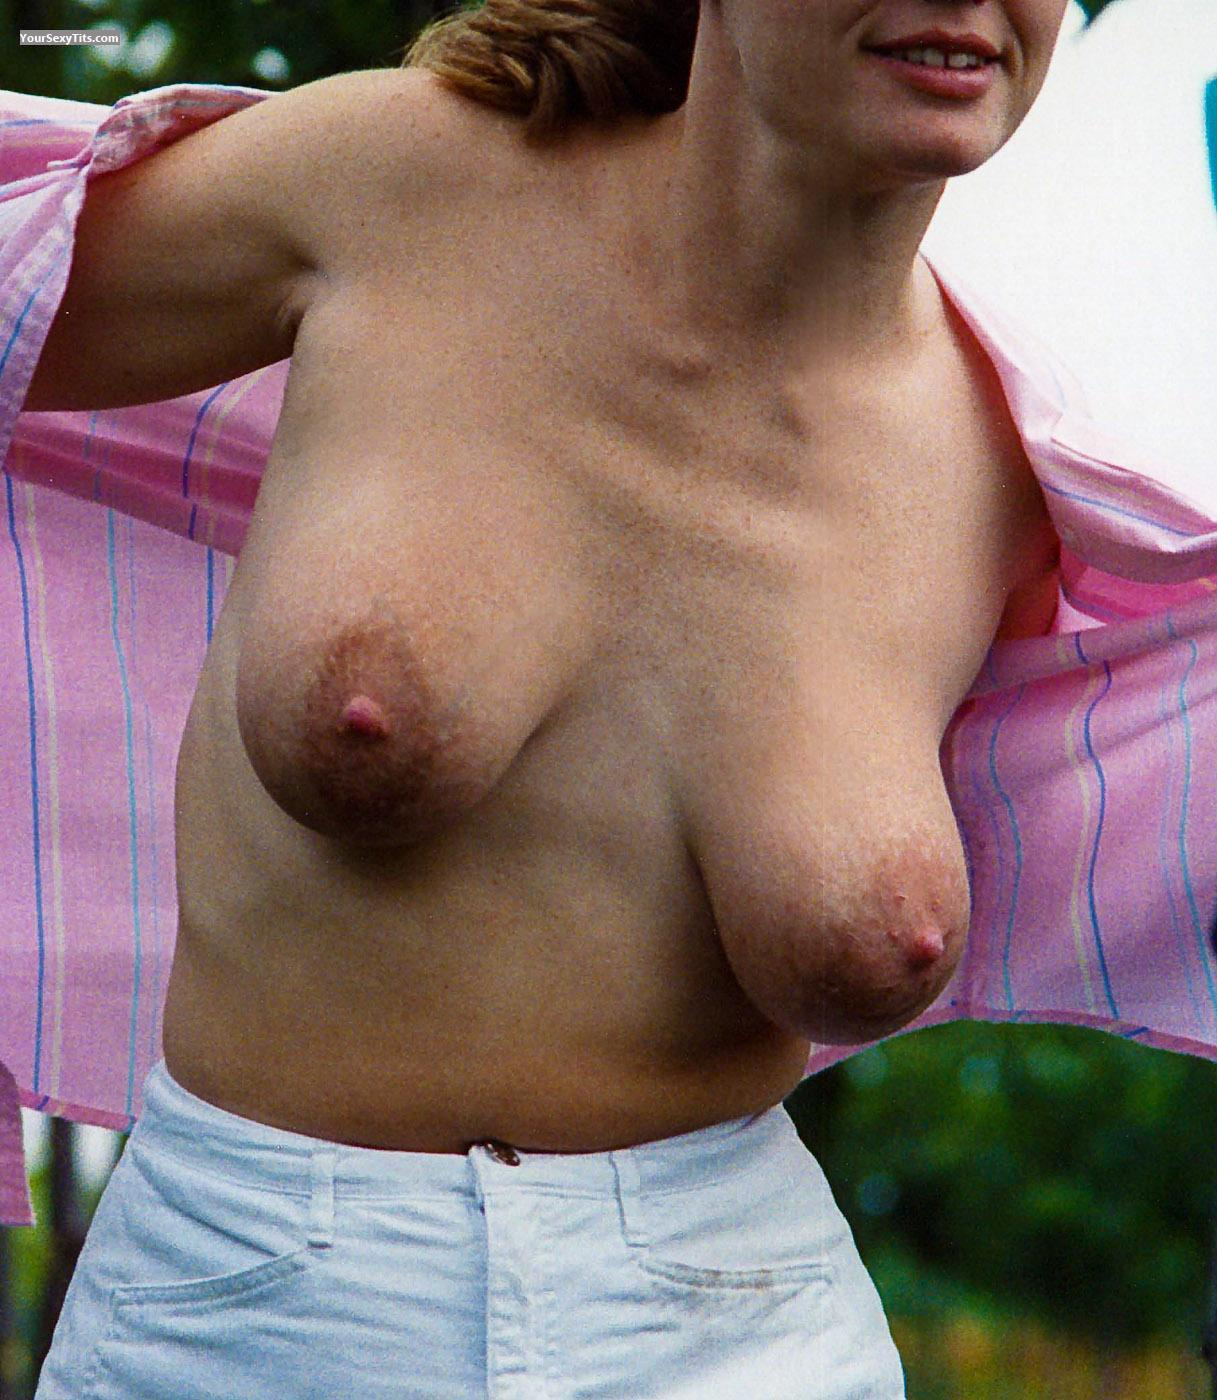 Tit Flash: Medium Tits - Beach Flasher Babe from United States